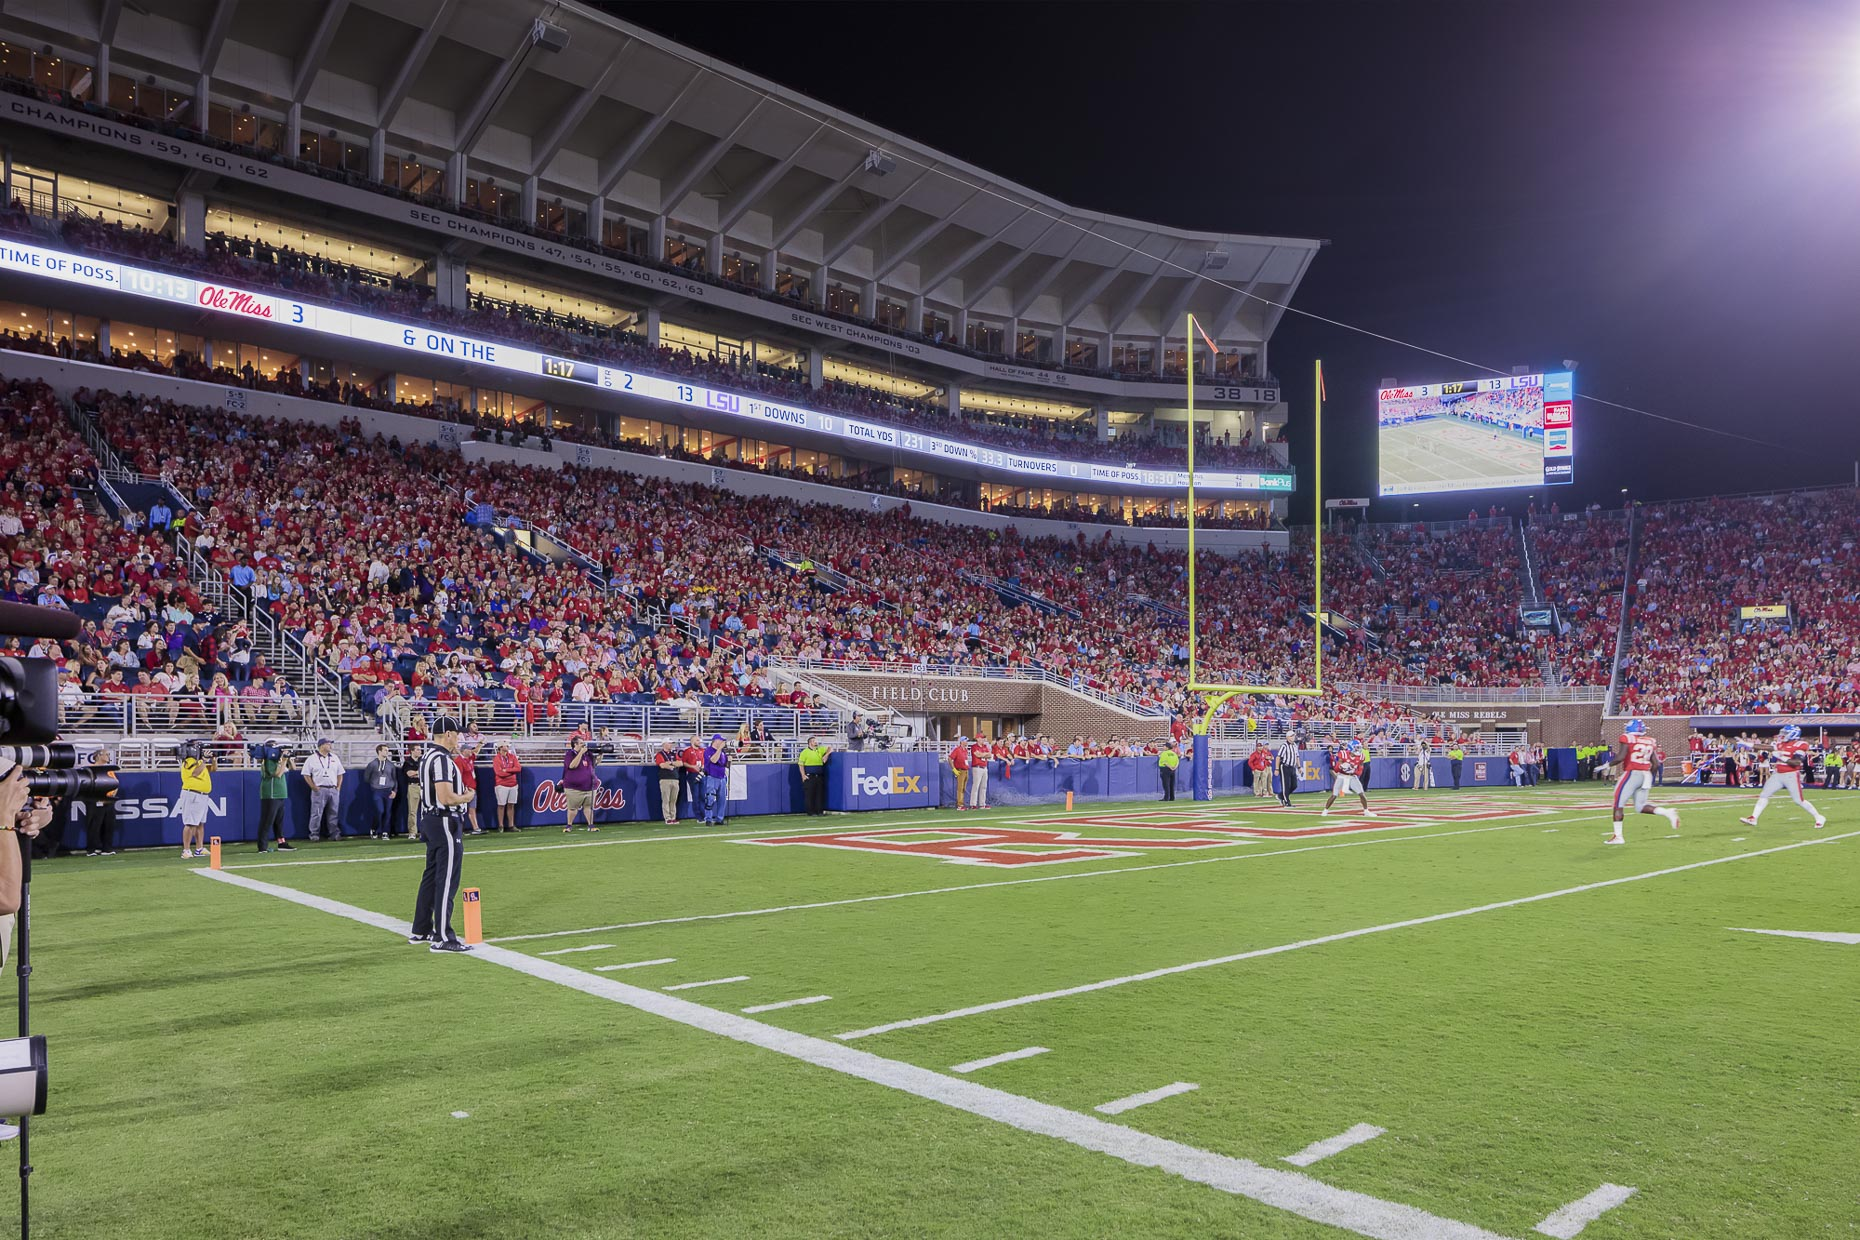 Ole Miss Vaught-Hemingway Stadium Expansion by AECOM photographed by Brad Feinknopf based in Columbus, Ohio